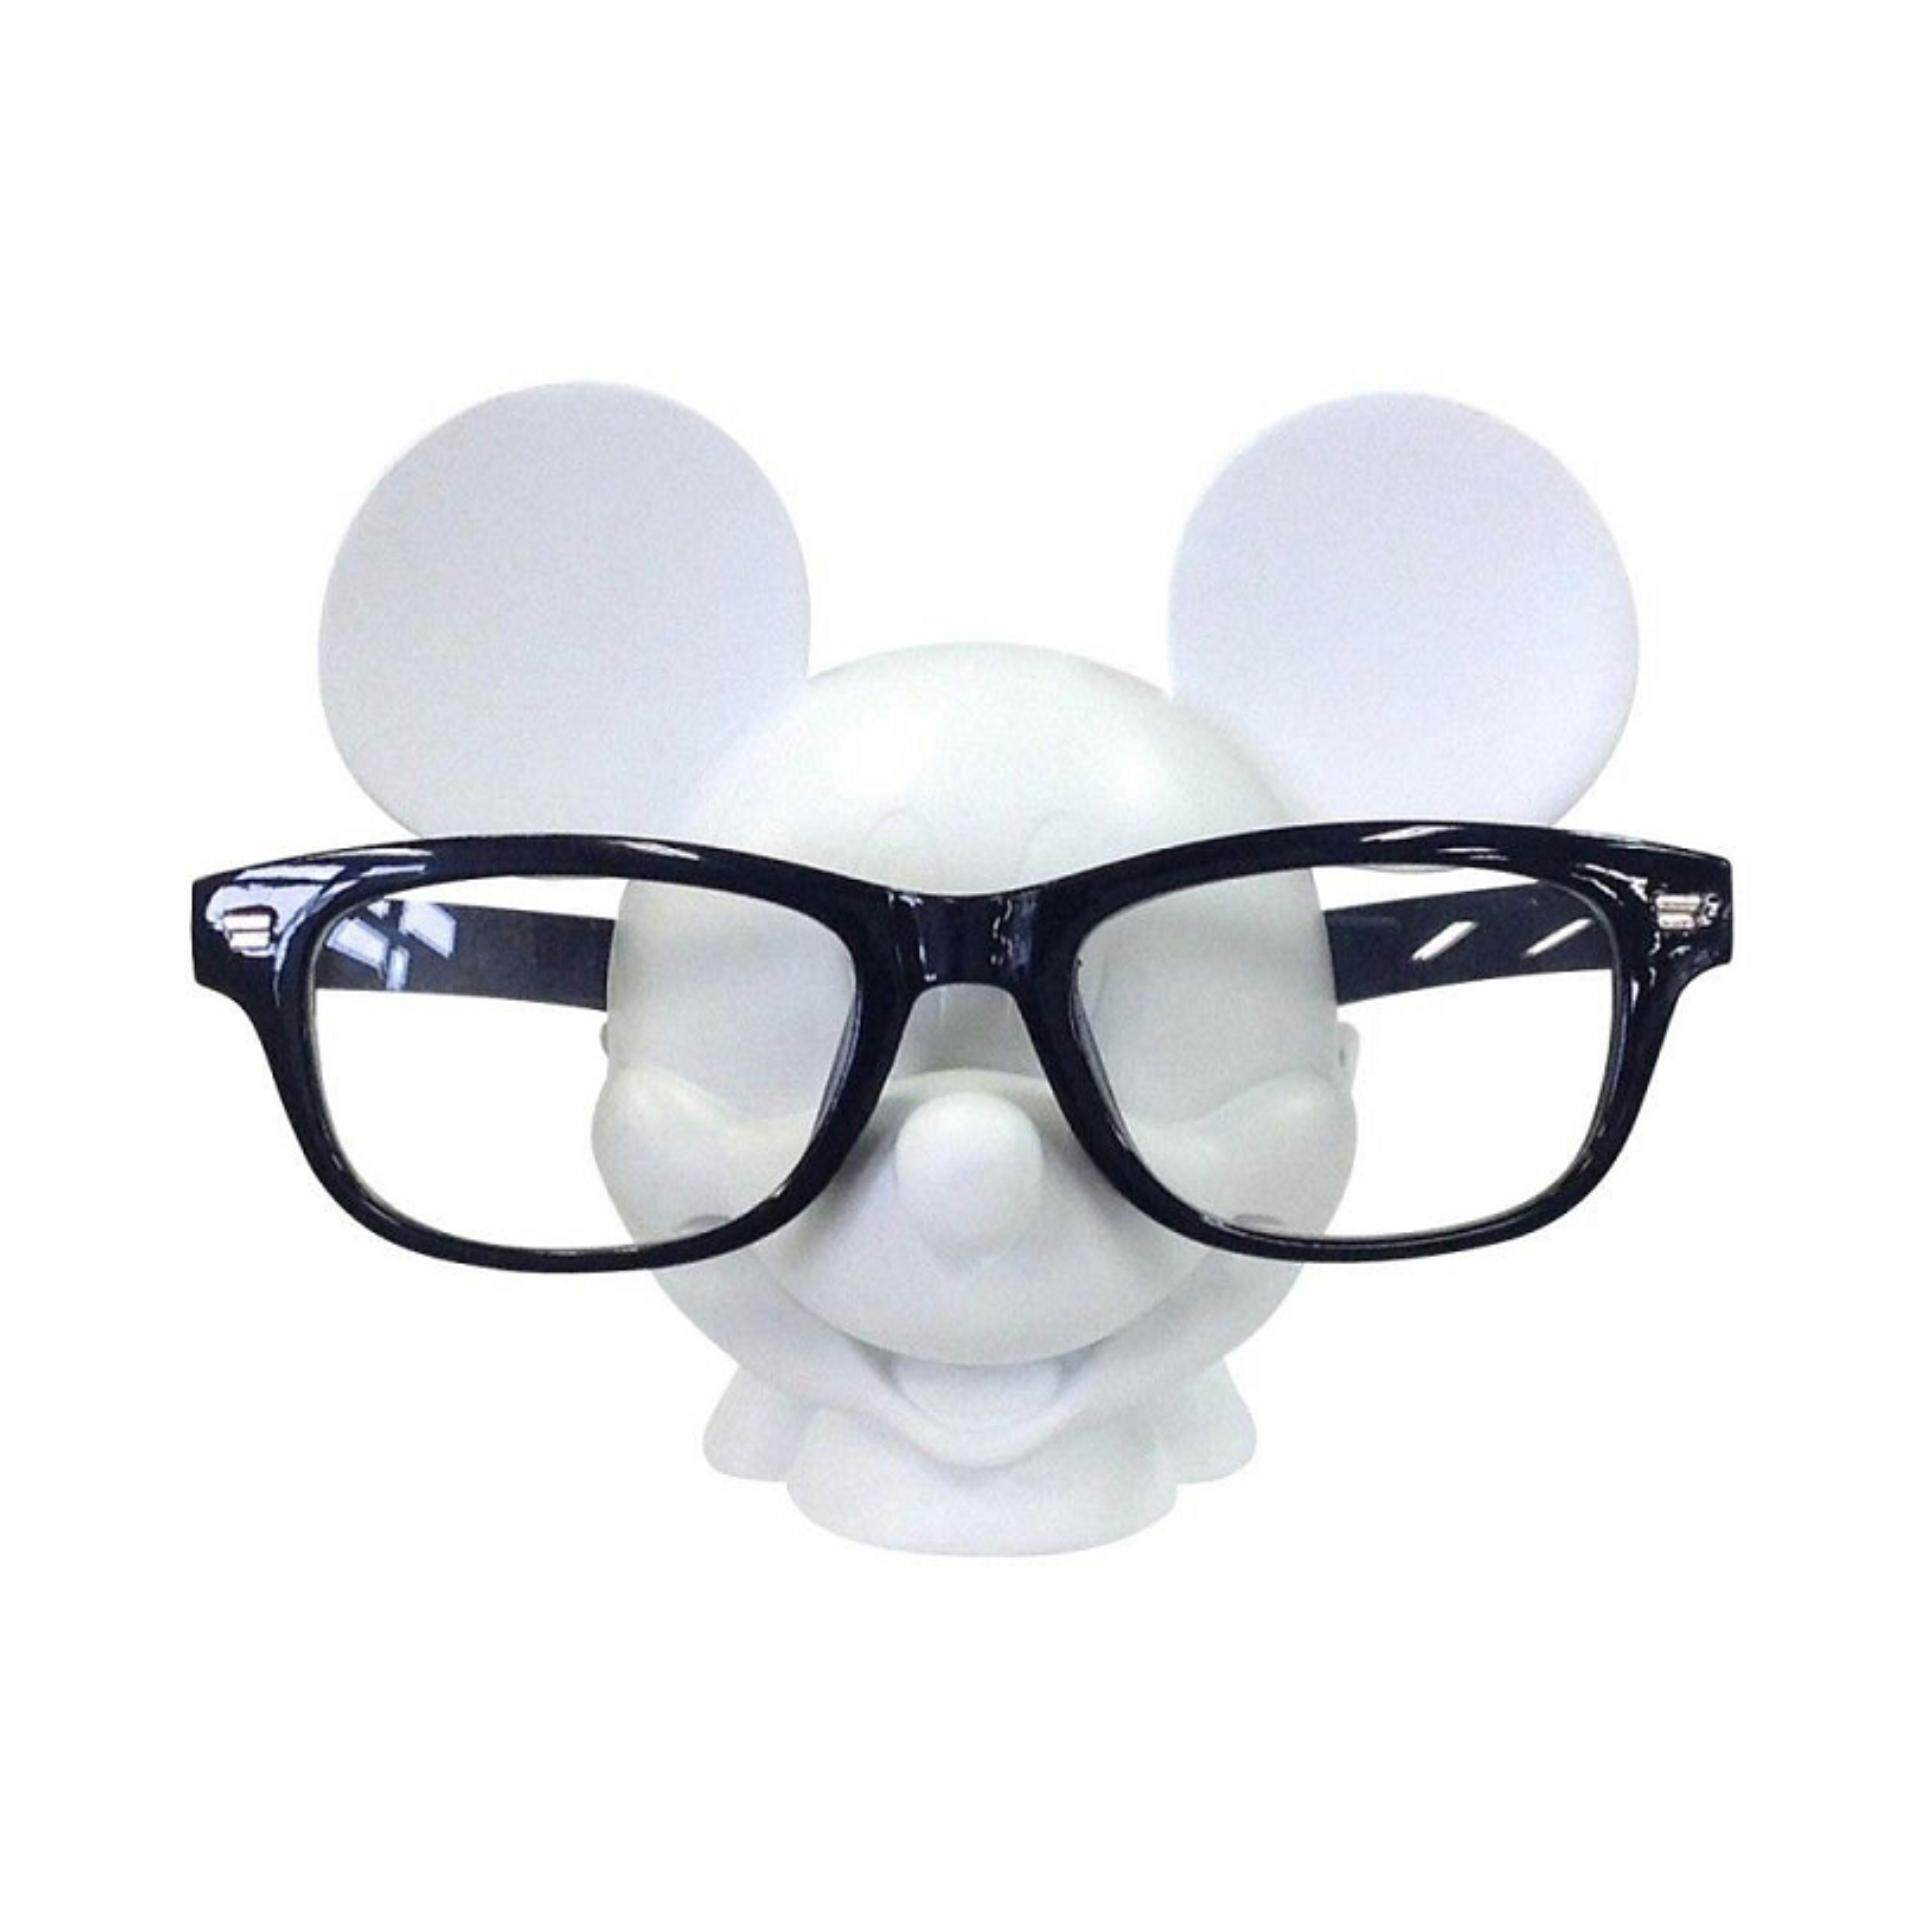 Disney Mickey Glasses Stand - White Colour